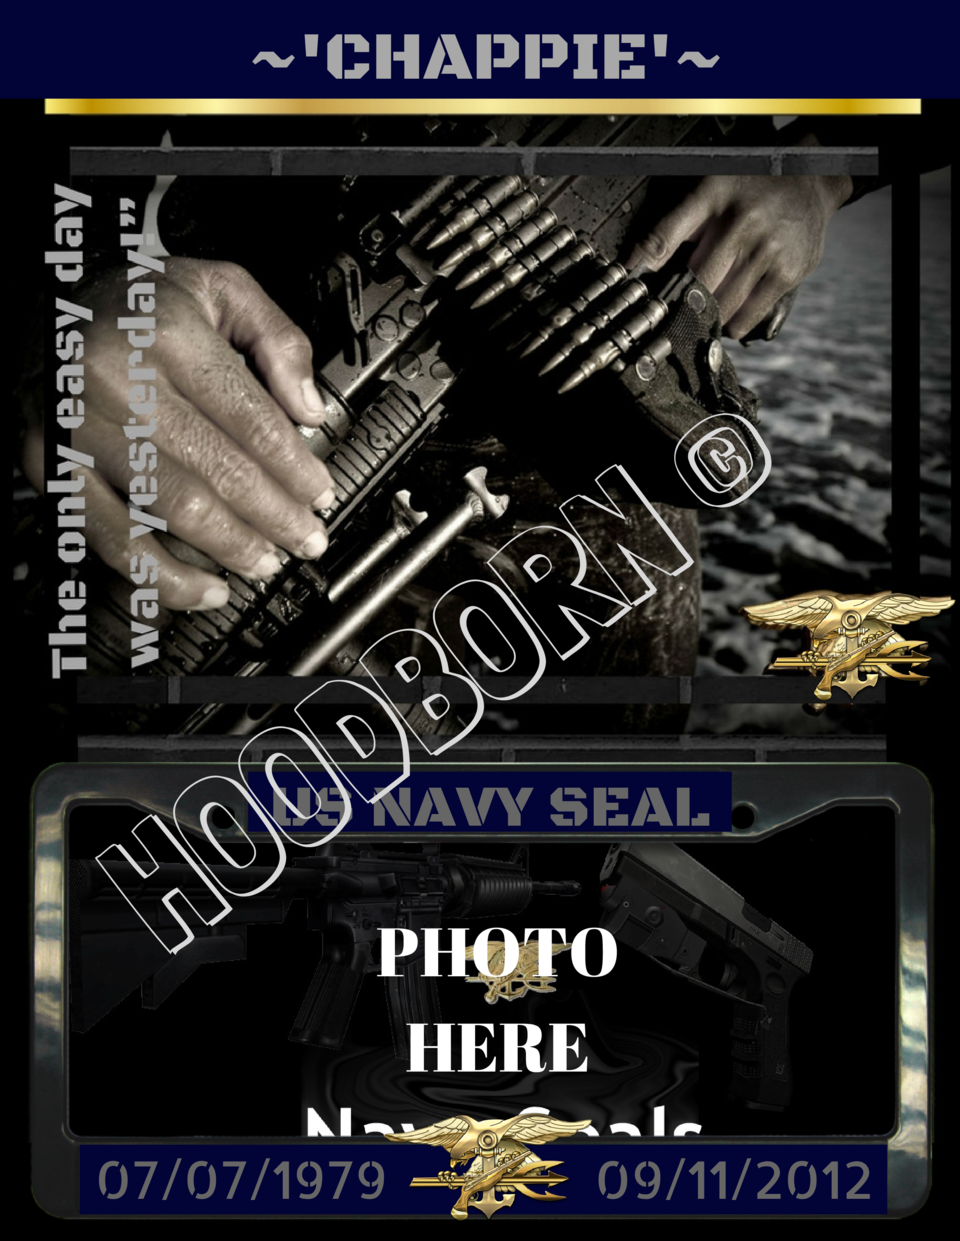 CHAPPIE       N R O B D O O H PHOTO US NAVY SEAL  HERE 07 07 1979  09 11 2012